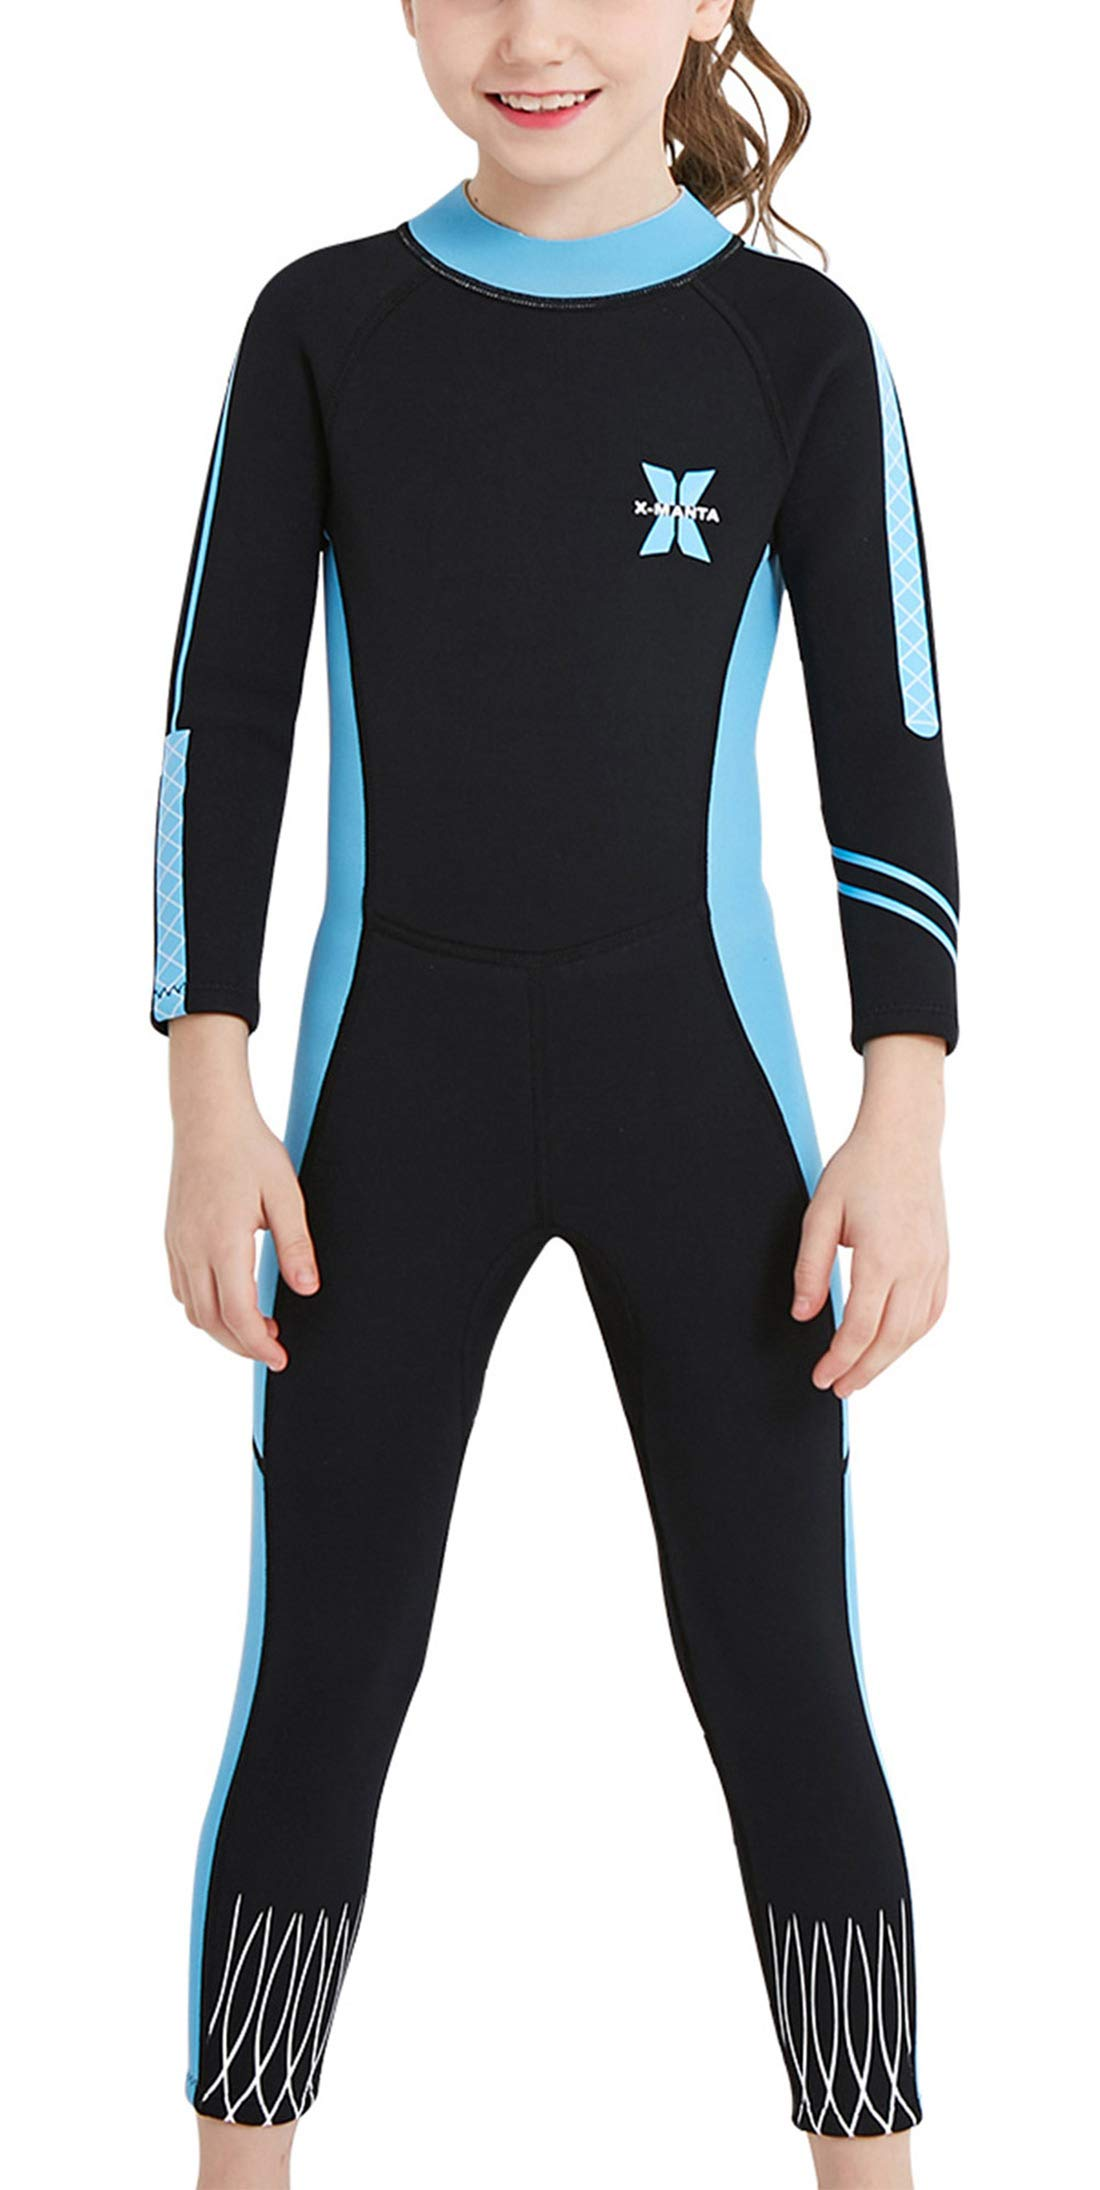 DIVE & SAIL Girls Wetsuit Warm 2.5mm Long Sleeve Swimsuit Sun UV Protection One Piece Full Suit Swimwear for Girls Black S by DIVE & SAIL